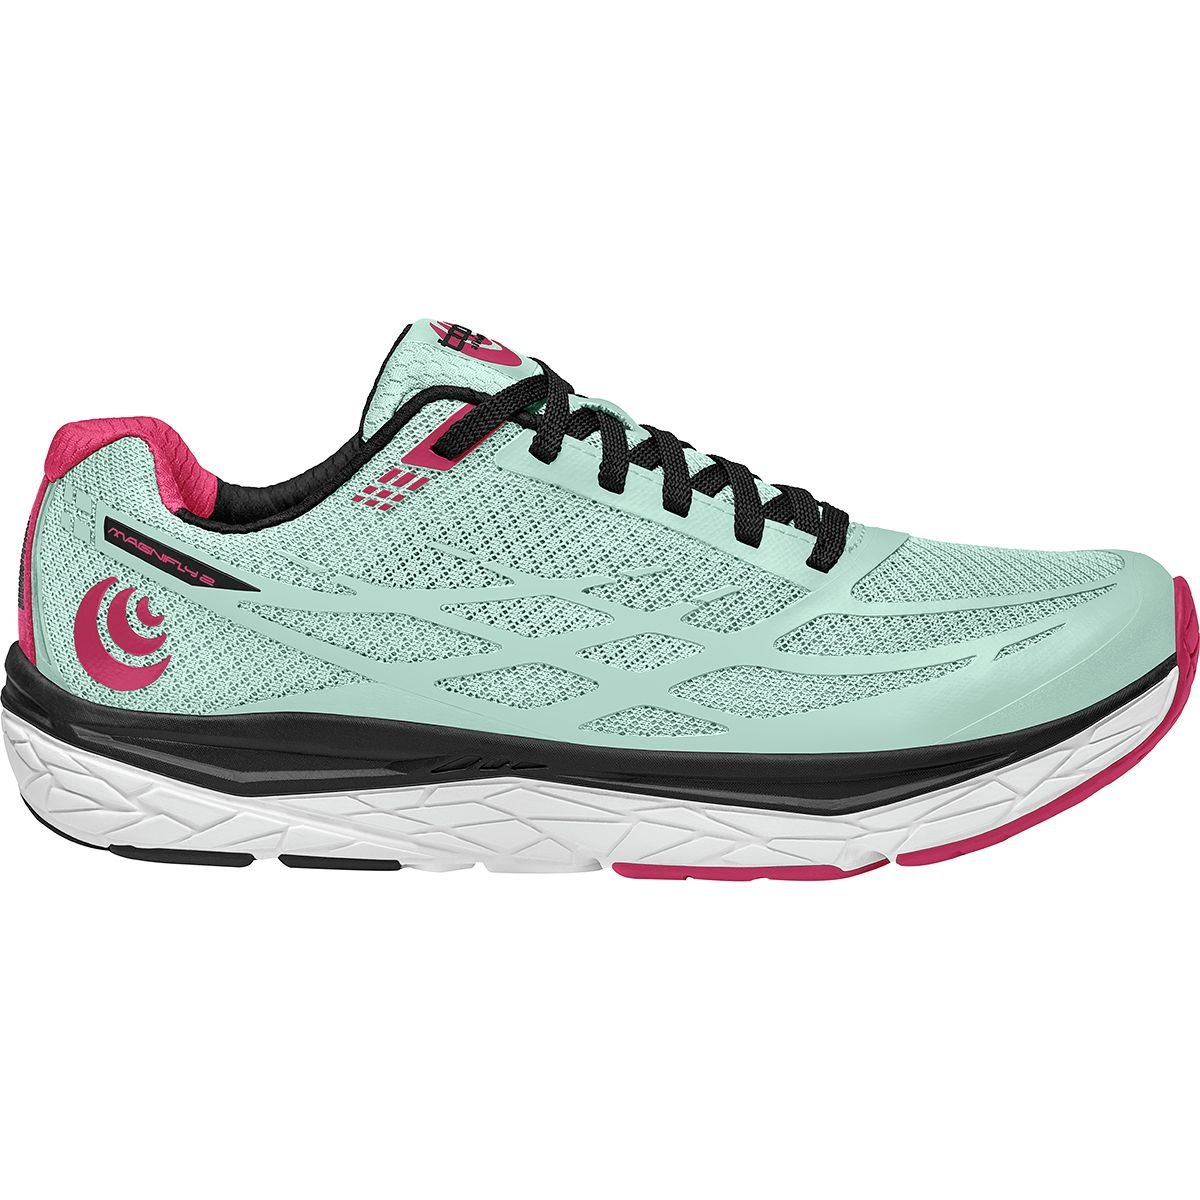 Topo Athletic Magnifly 2 Running Shoes - Women's B074JFM4KZ 9 B(M) US|Ice/Raspberry